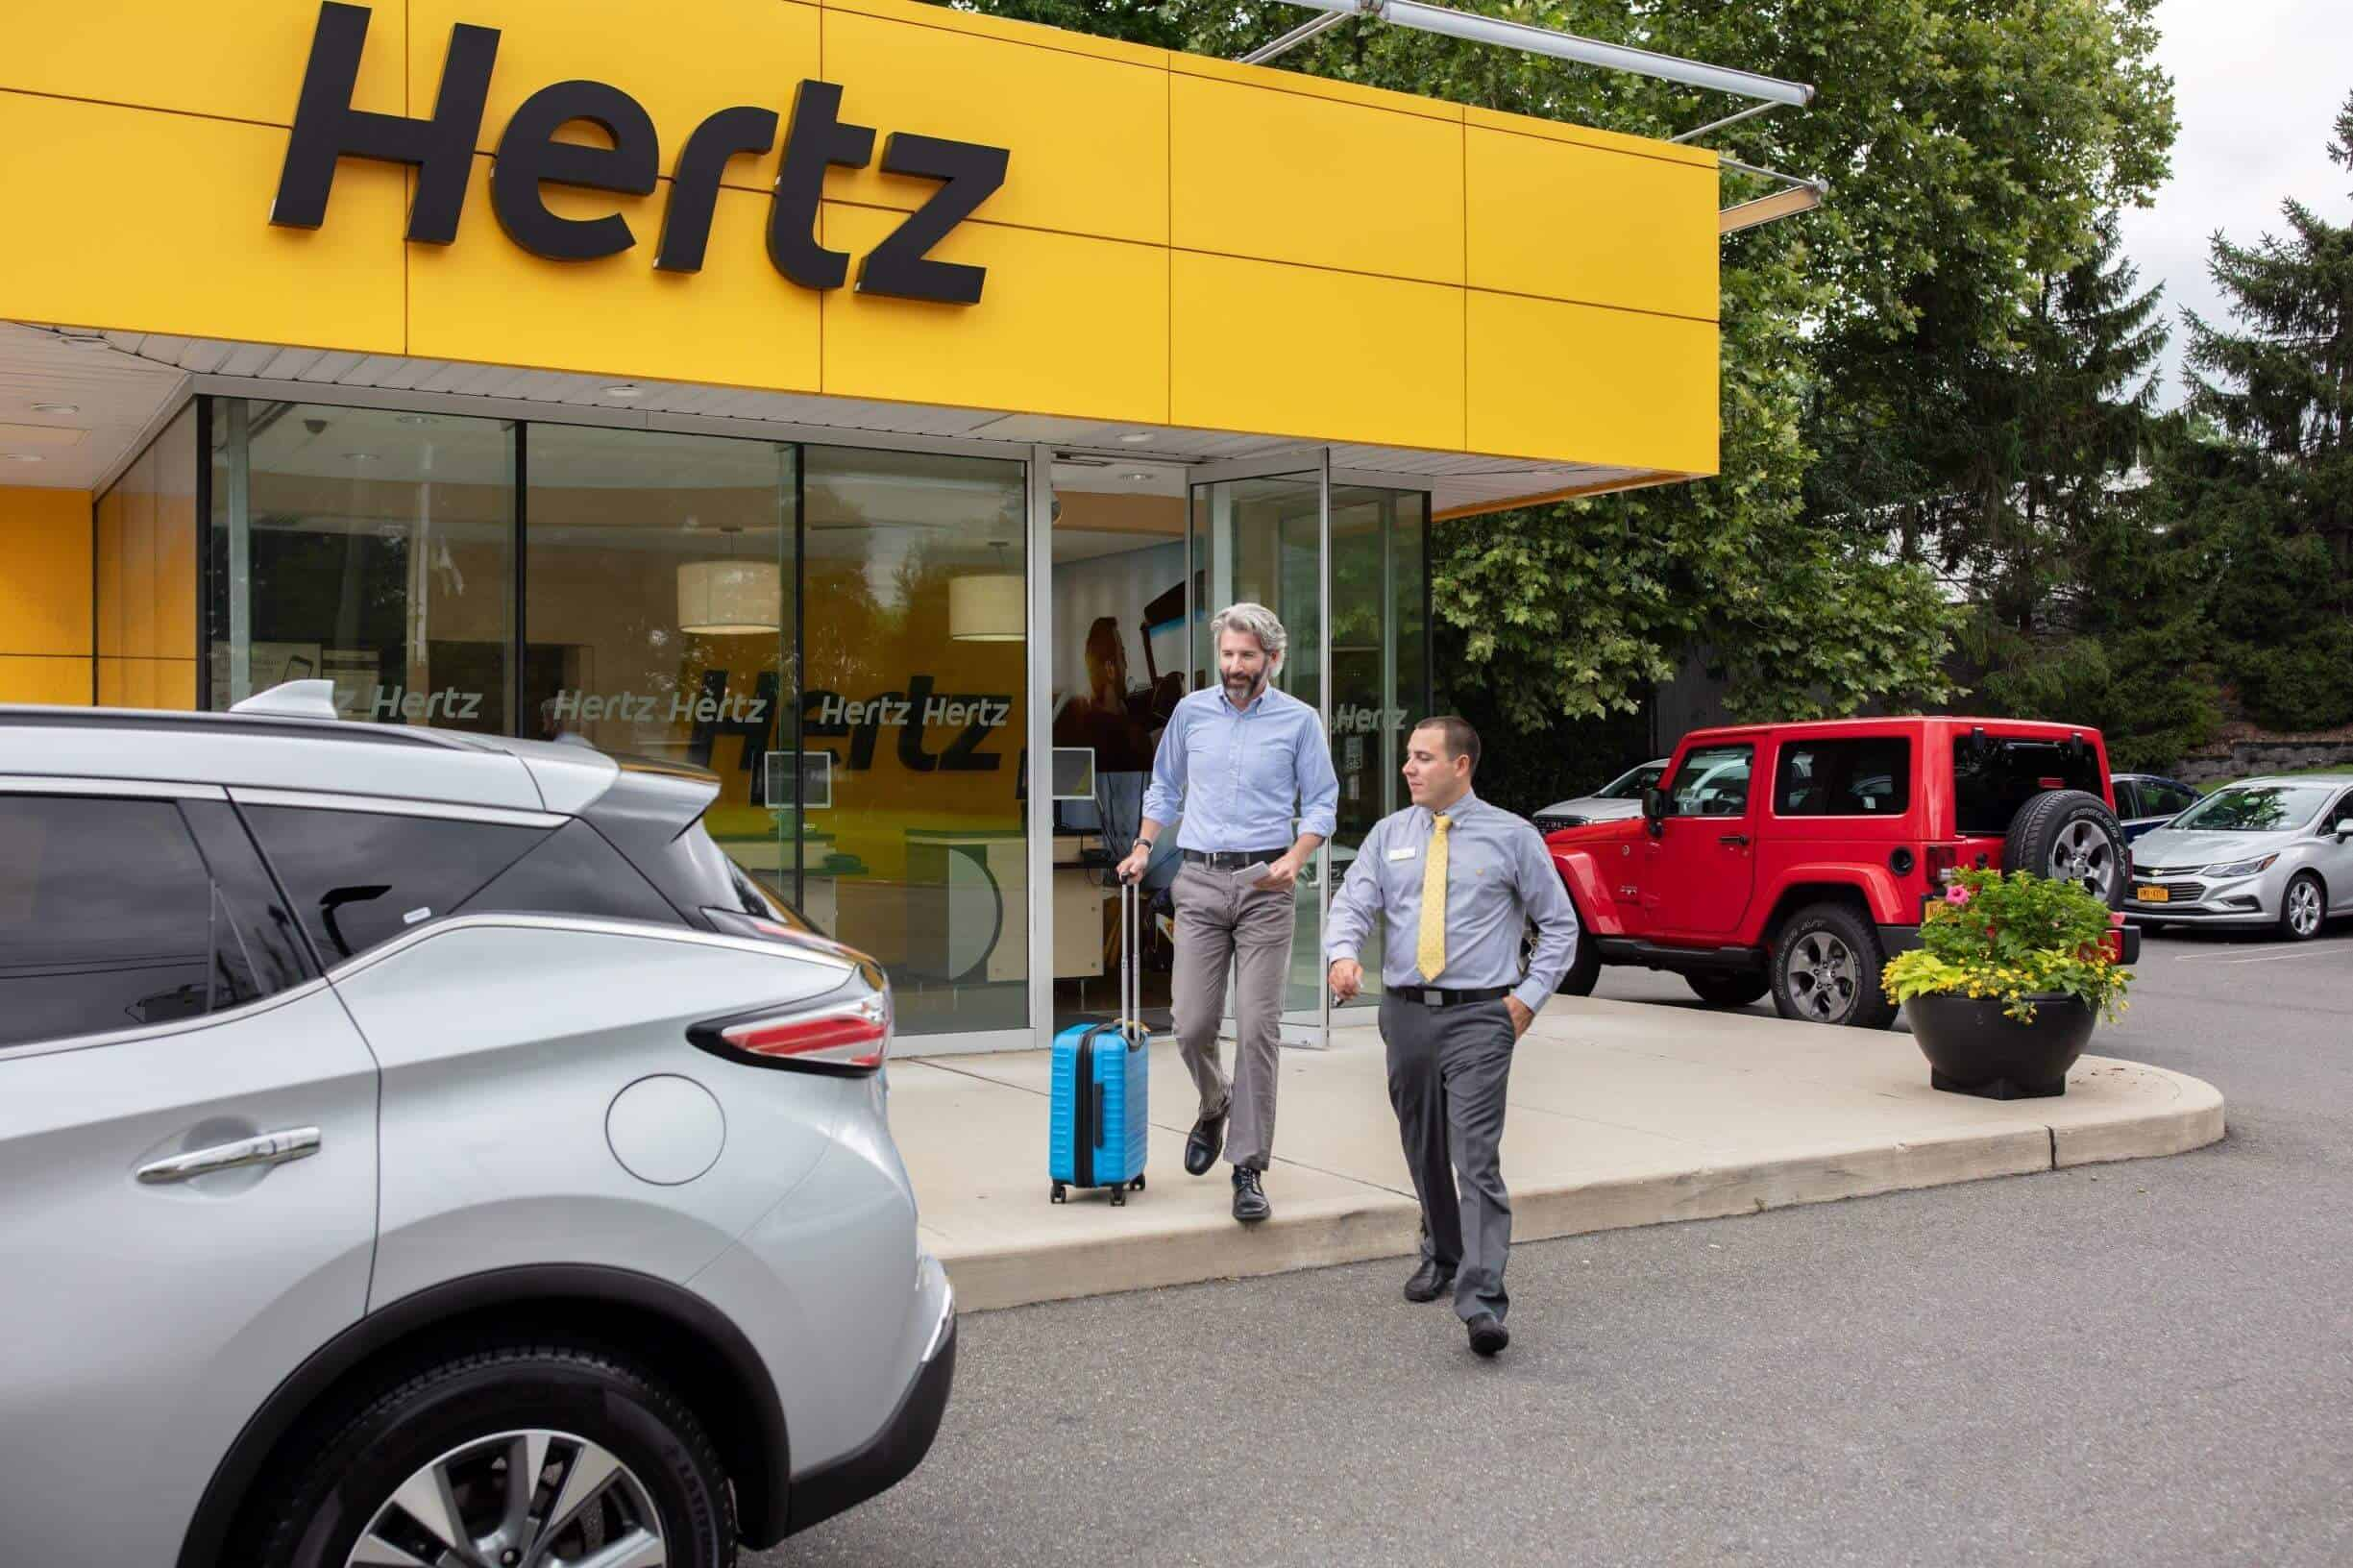 Hertz Holds Talks With Banks to Raise Cash, Stock Price Crashes 14%